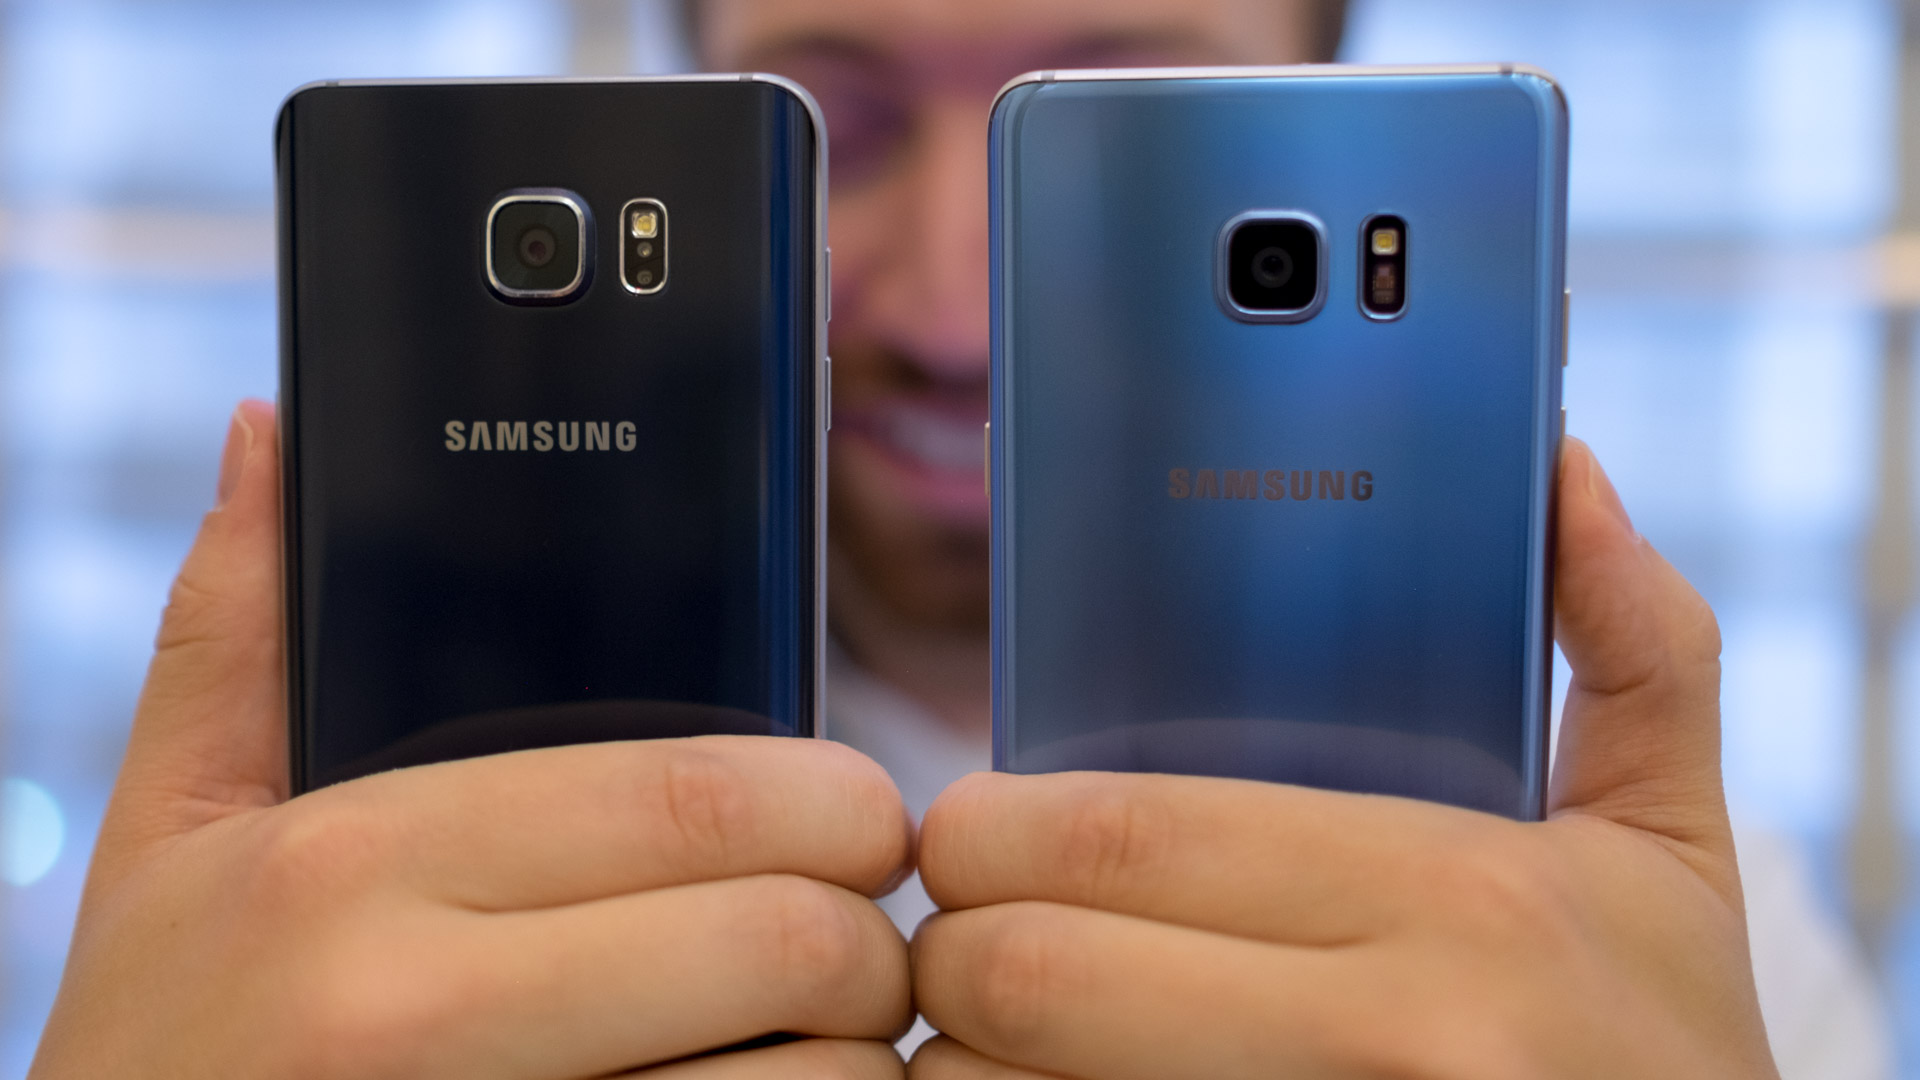 The Note 7 camera outshines the past Note phones by far